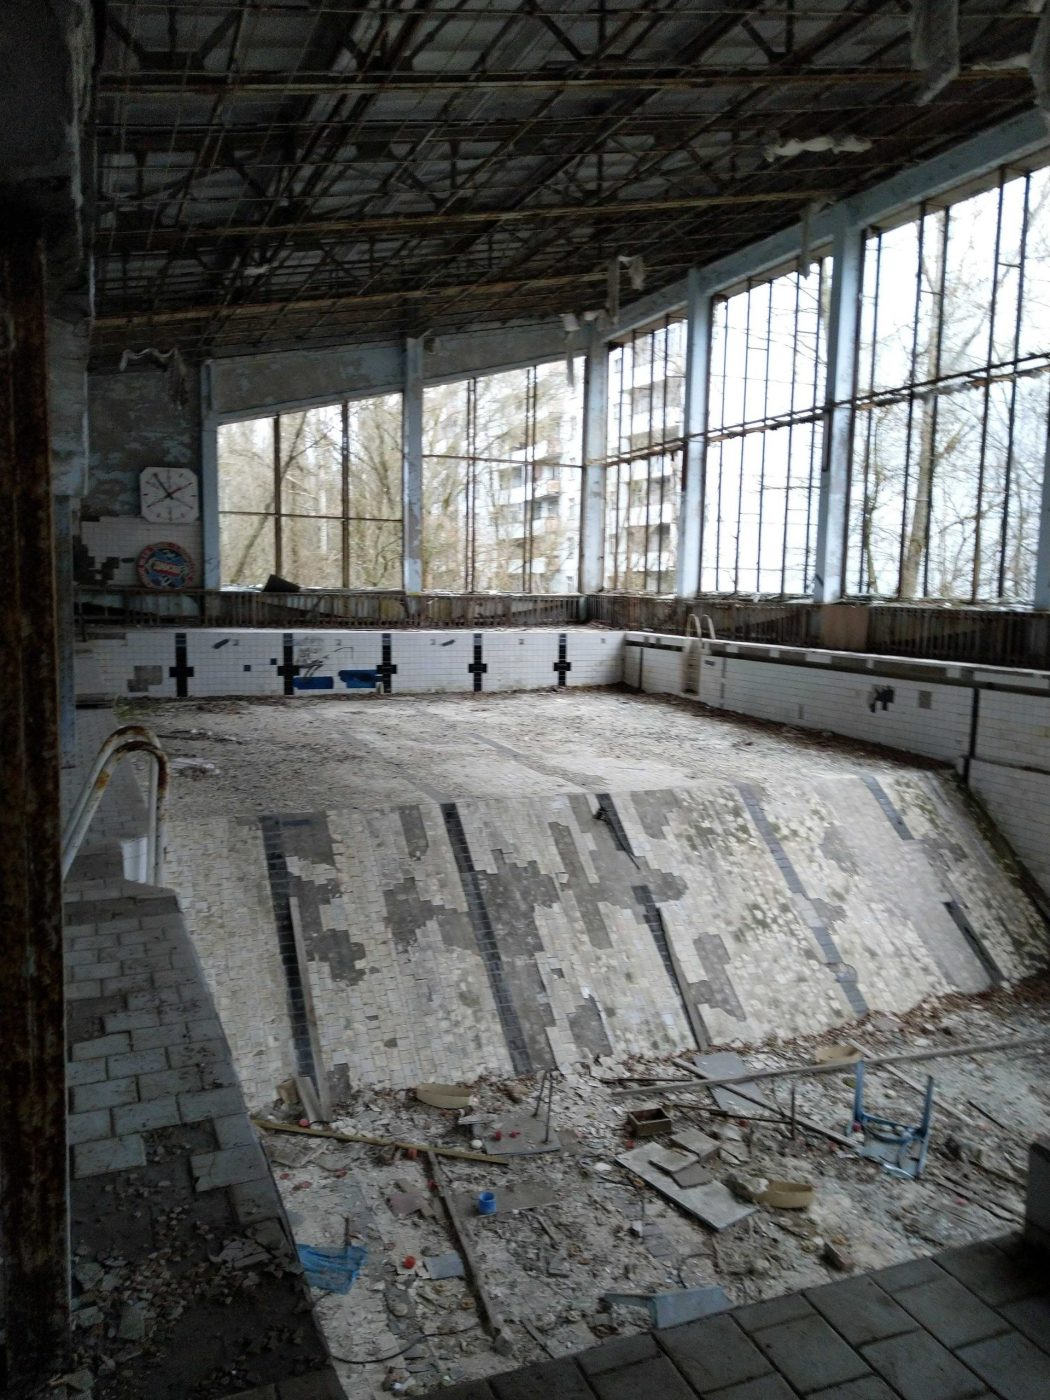 The Chernobyl abandoned swimming pool